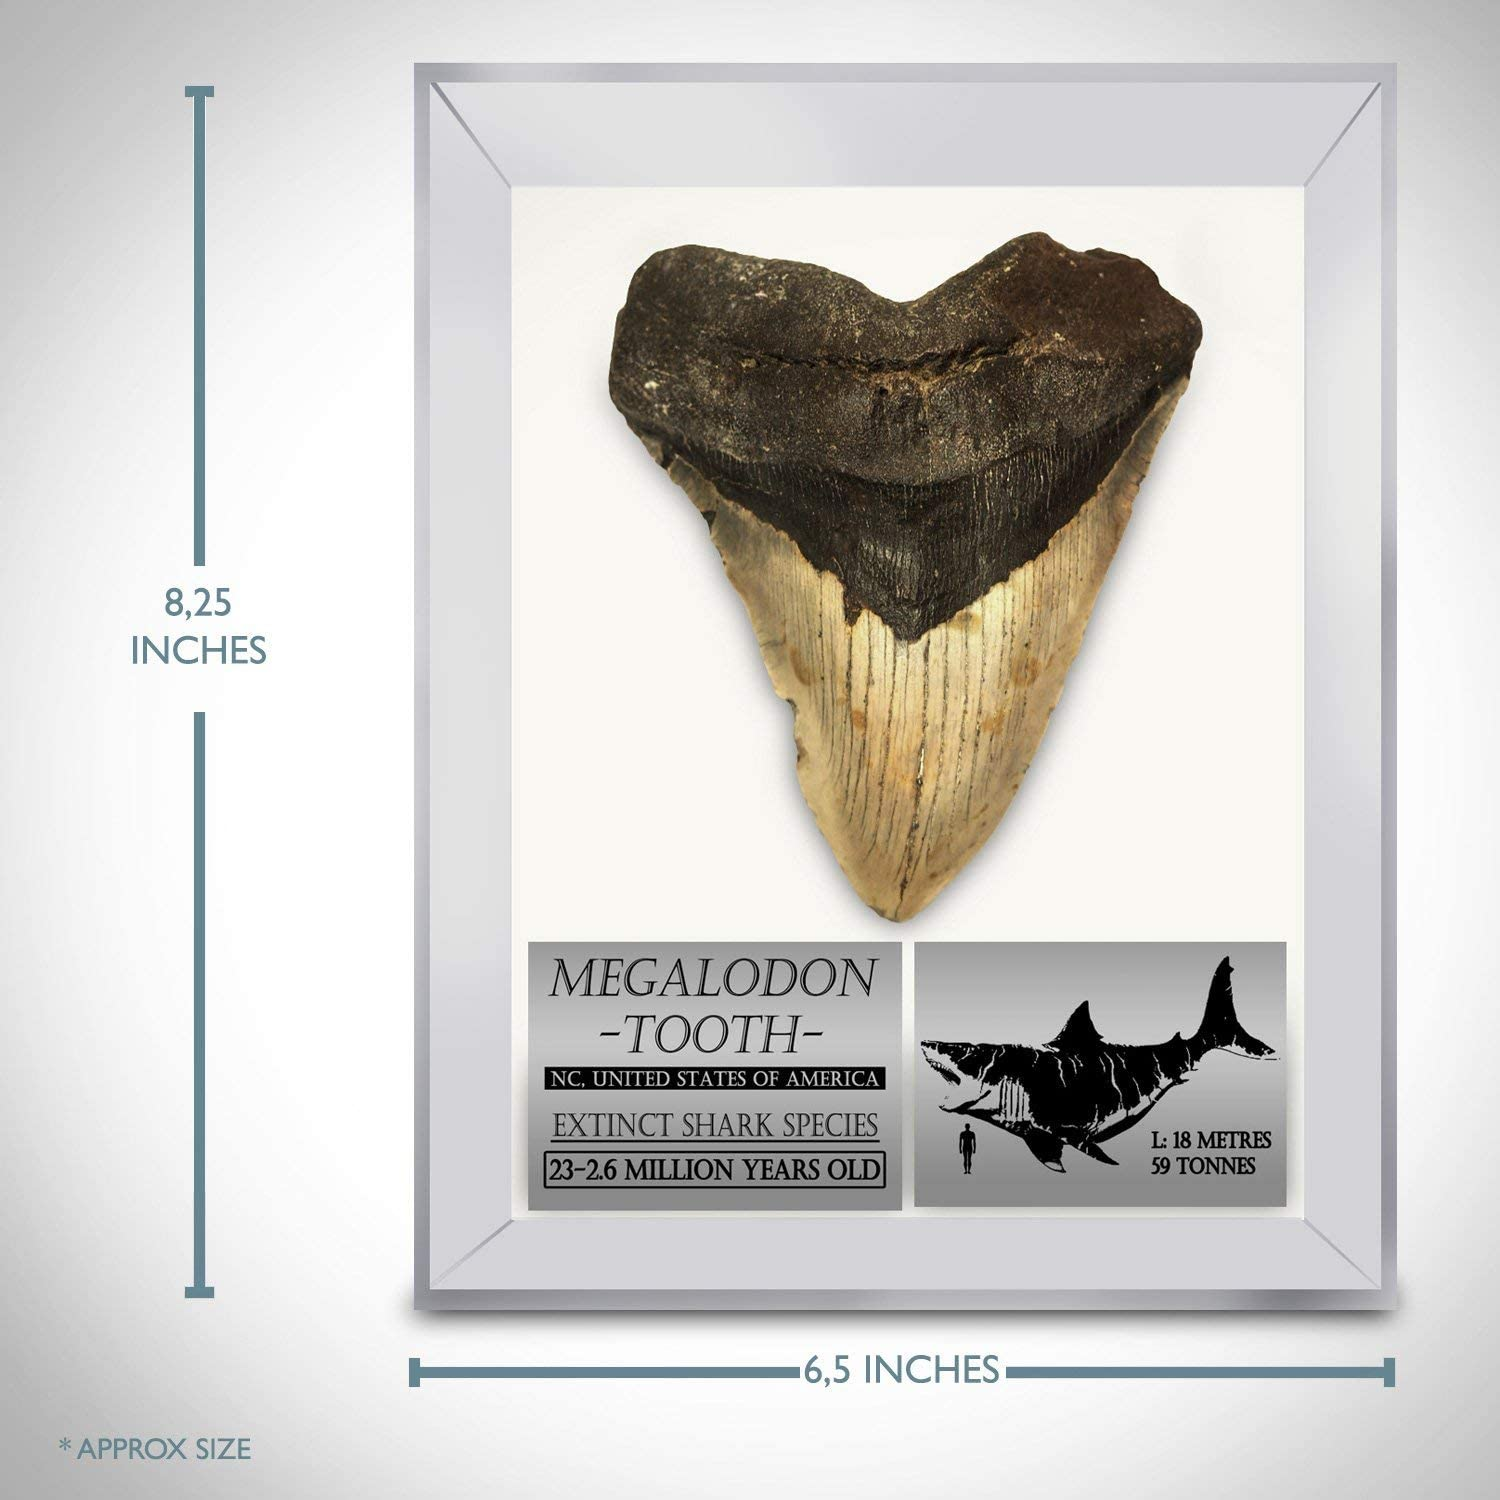 860 REPLICA Megalodon 7 inch tooth if this was not a replica it would be in a museum for size and it needs a good home in your collection.